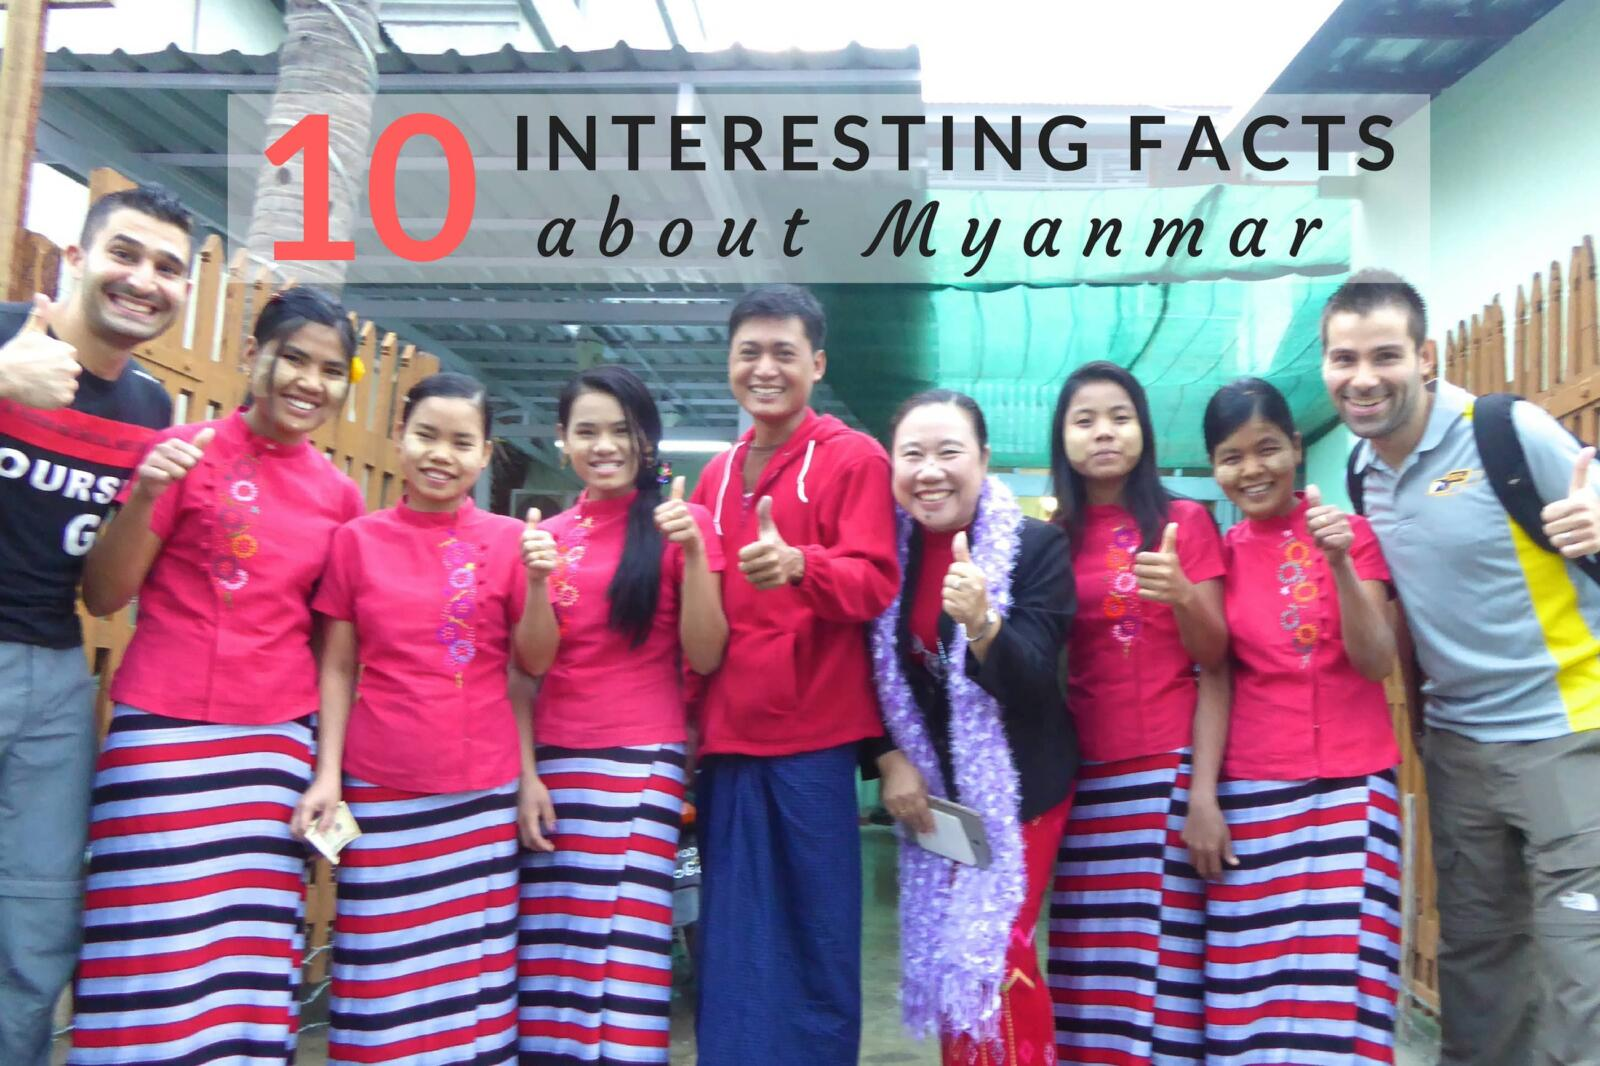 Posing with group of Burmese wearing longyi